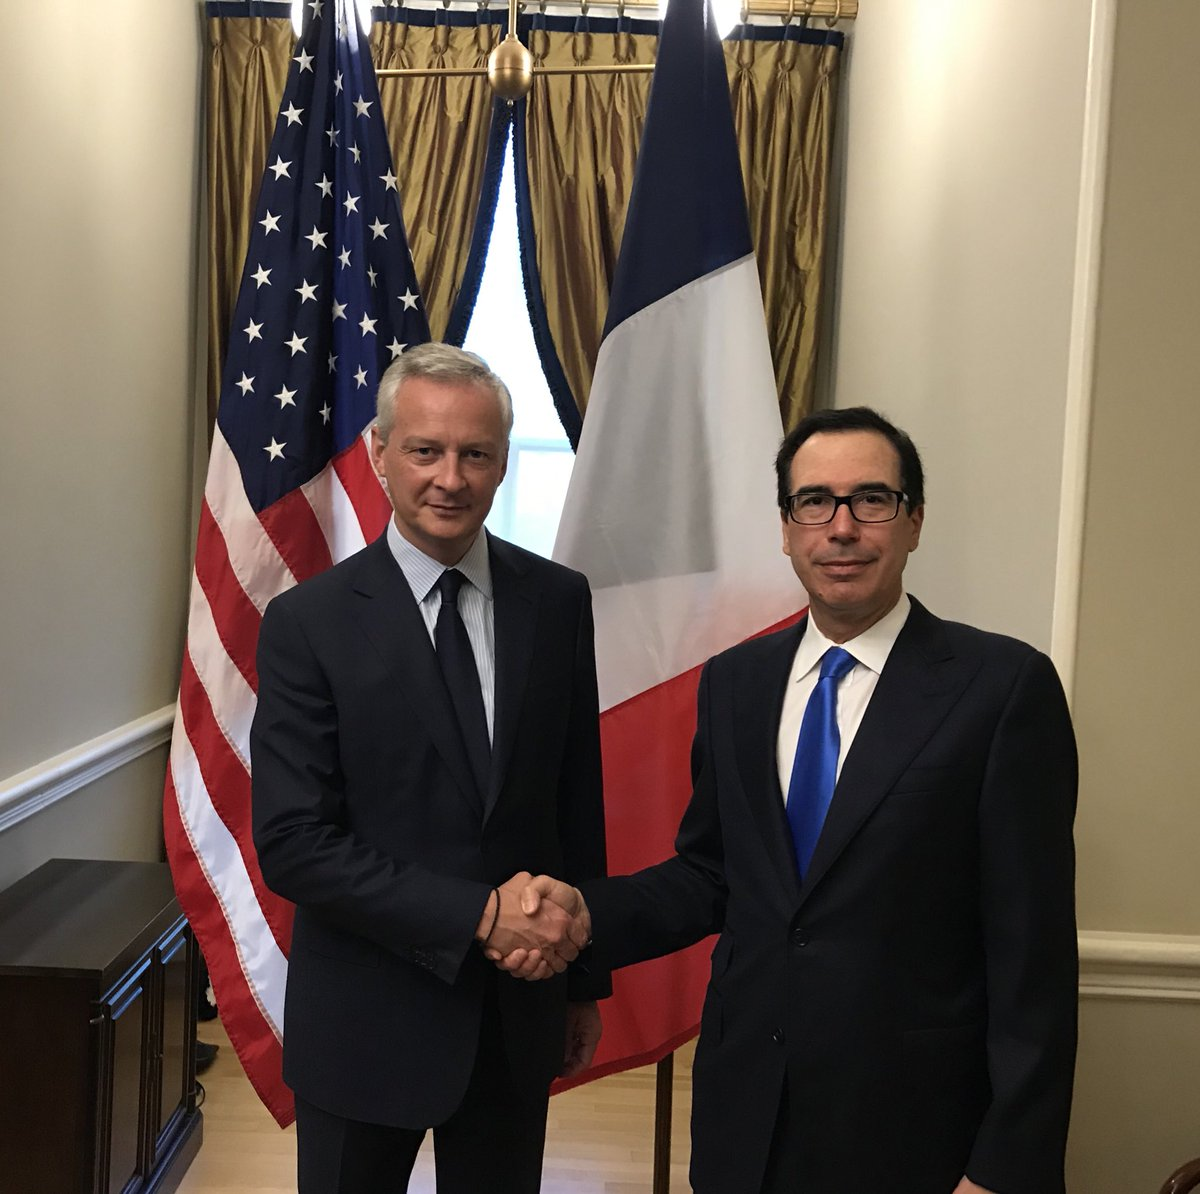 Enjoyed meeting with @BrunoLeMaire today @USTreasury to continue our discussion on international tax issues.